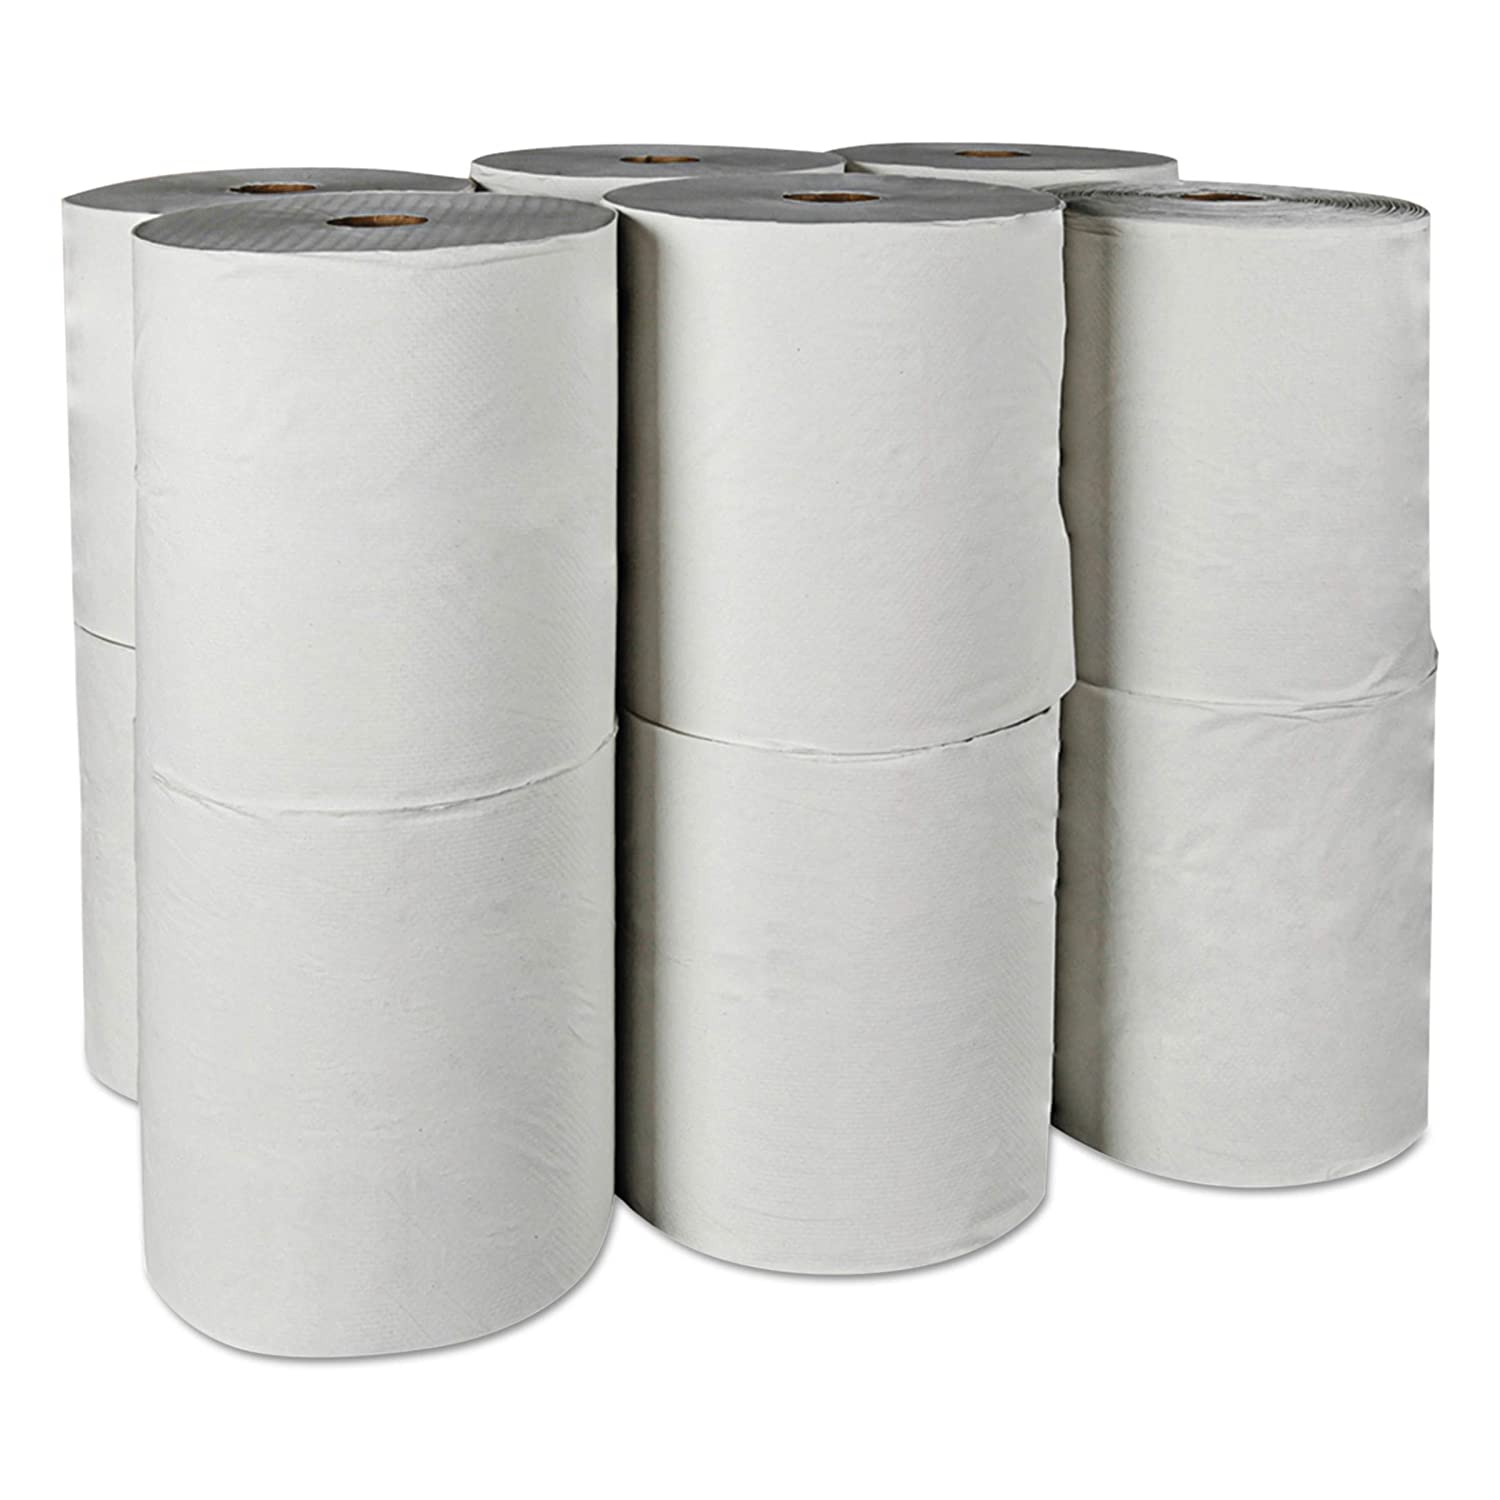 100/% Recycled 8 x 800ft Scott 01052 Hard Roll Towels Kimberly-Clark Professional Case of 12 Rolls 1.5 Core 8 x 800ft 1.5 Core White Case of 12 Rolls